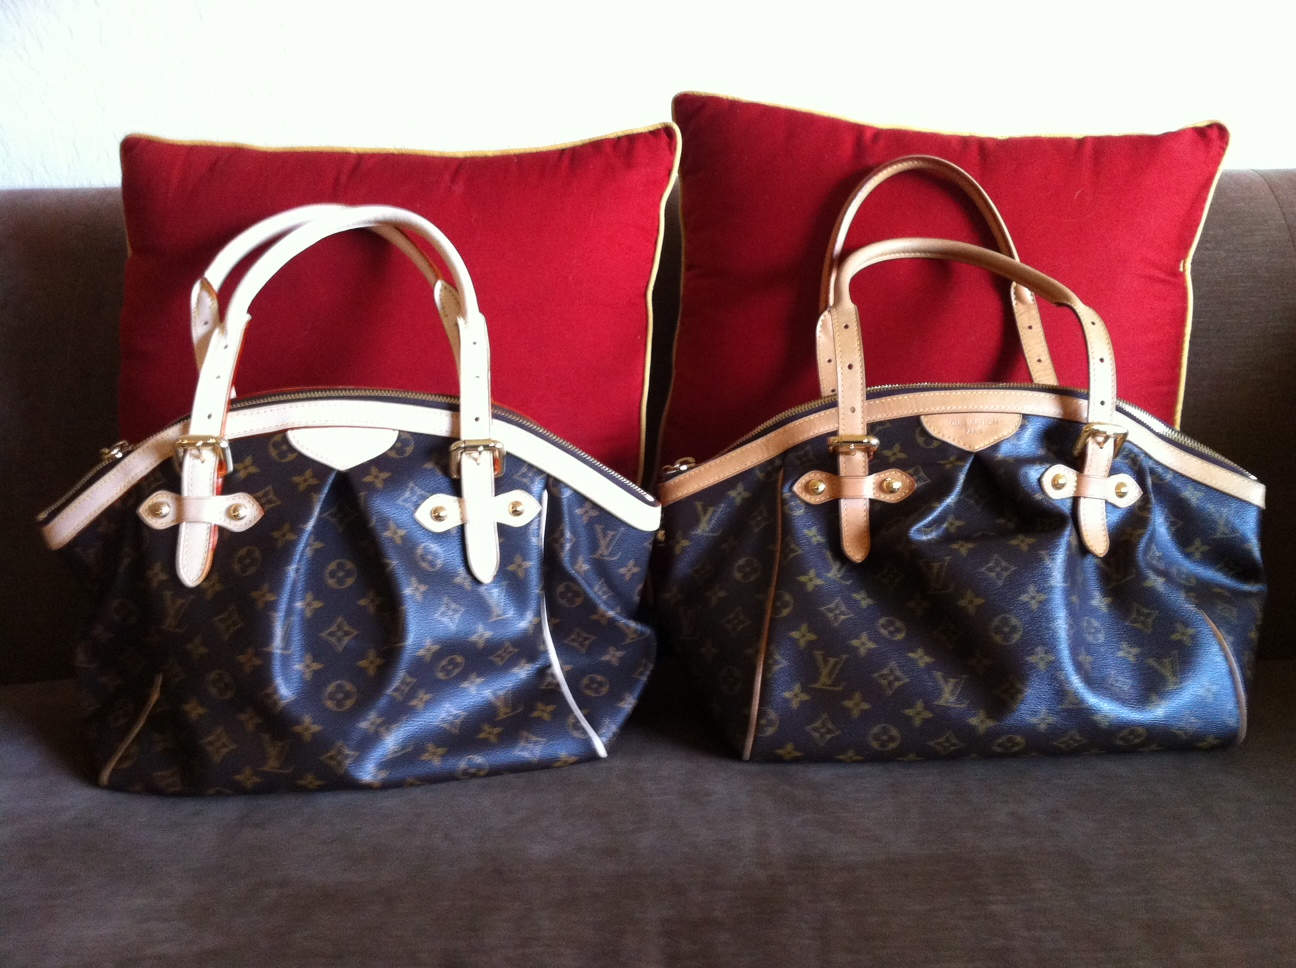 Tivoli Gm Youtube Celine Bag Look Made In Spain Ysl New Collection Bags